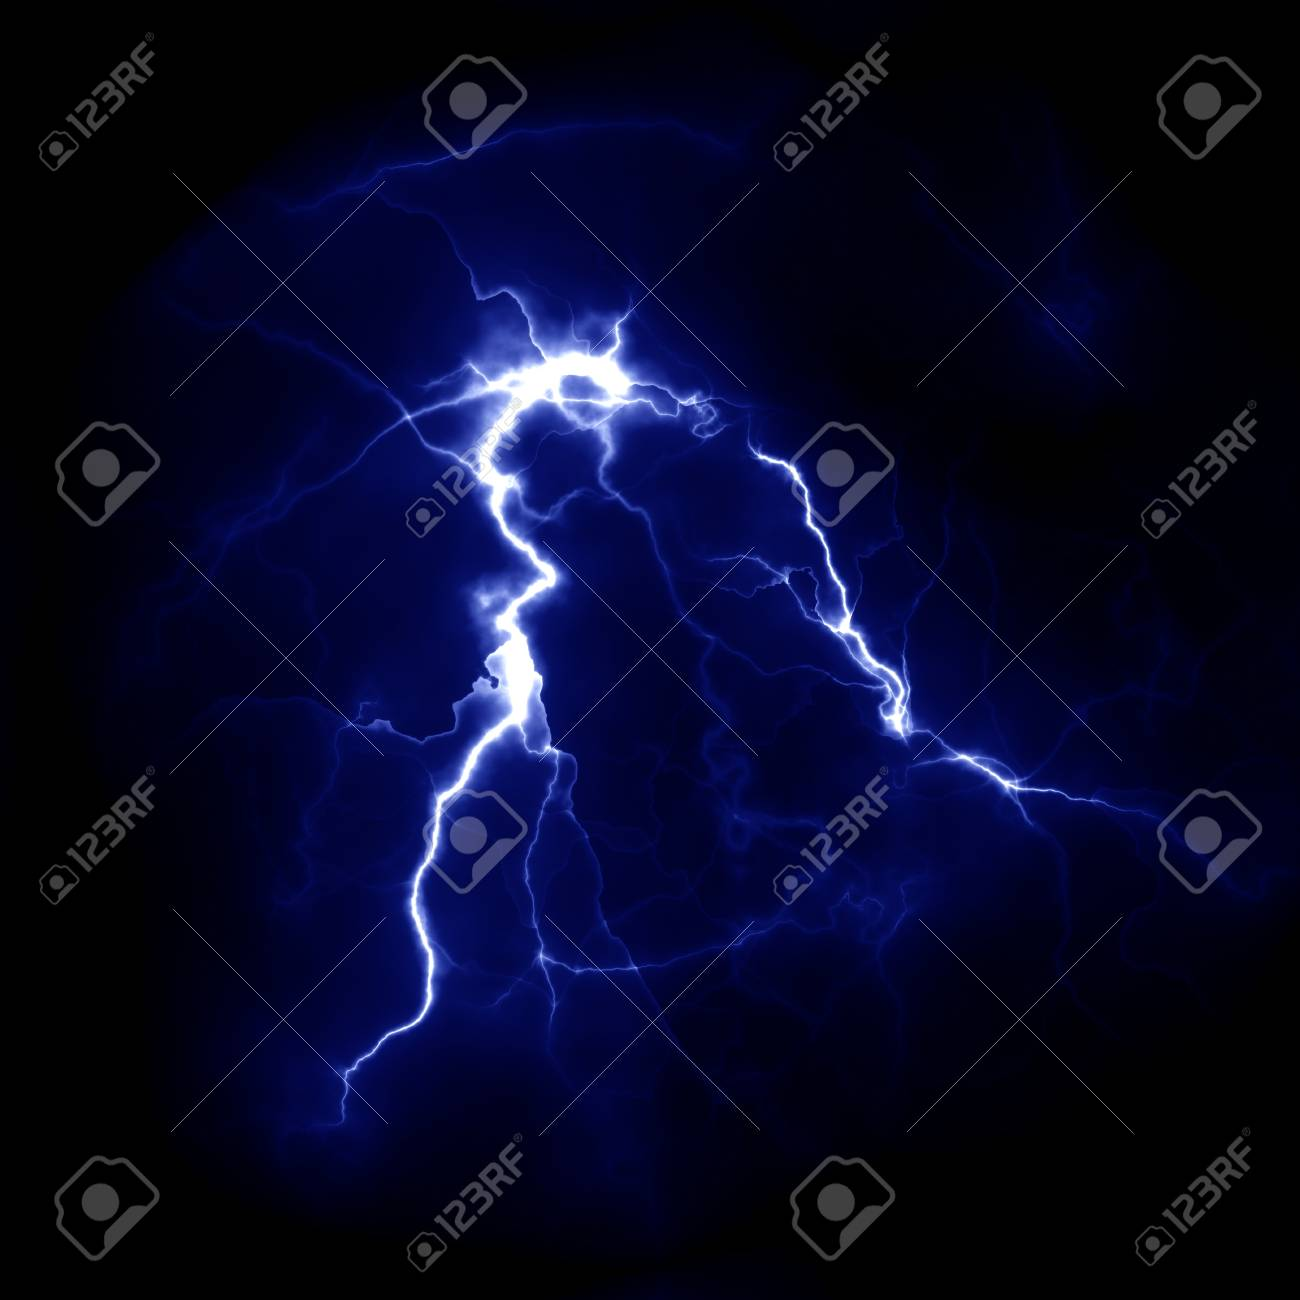 lightning template for design electric discharge in the sky